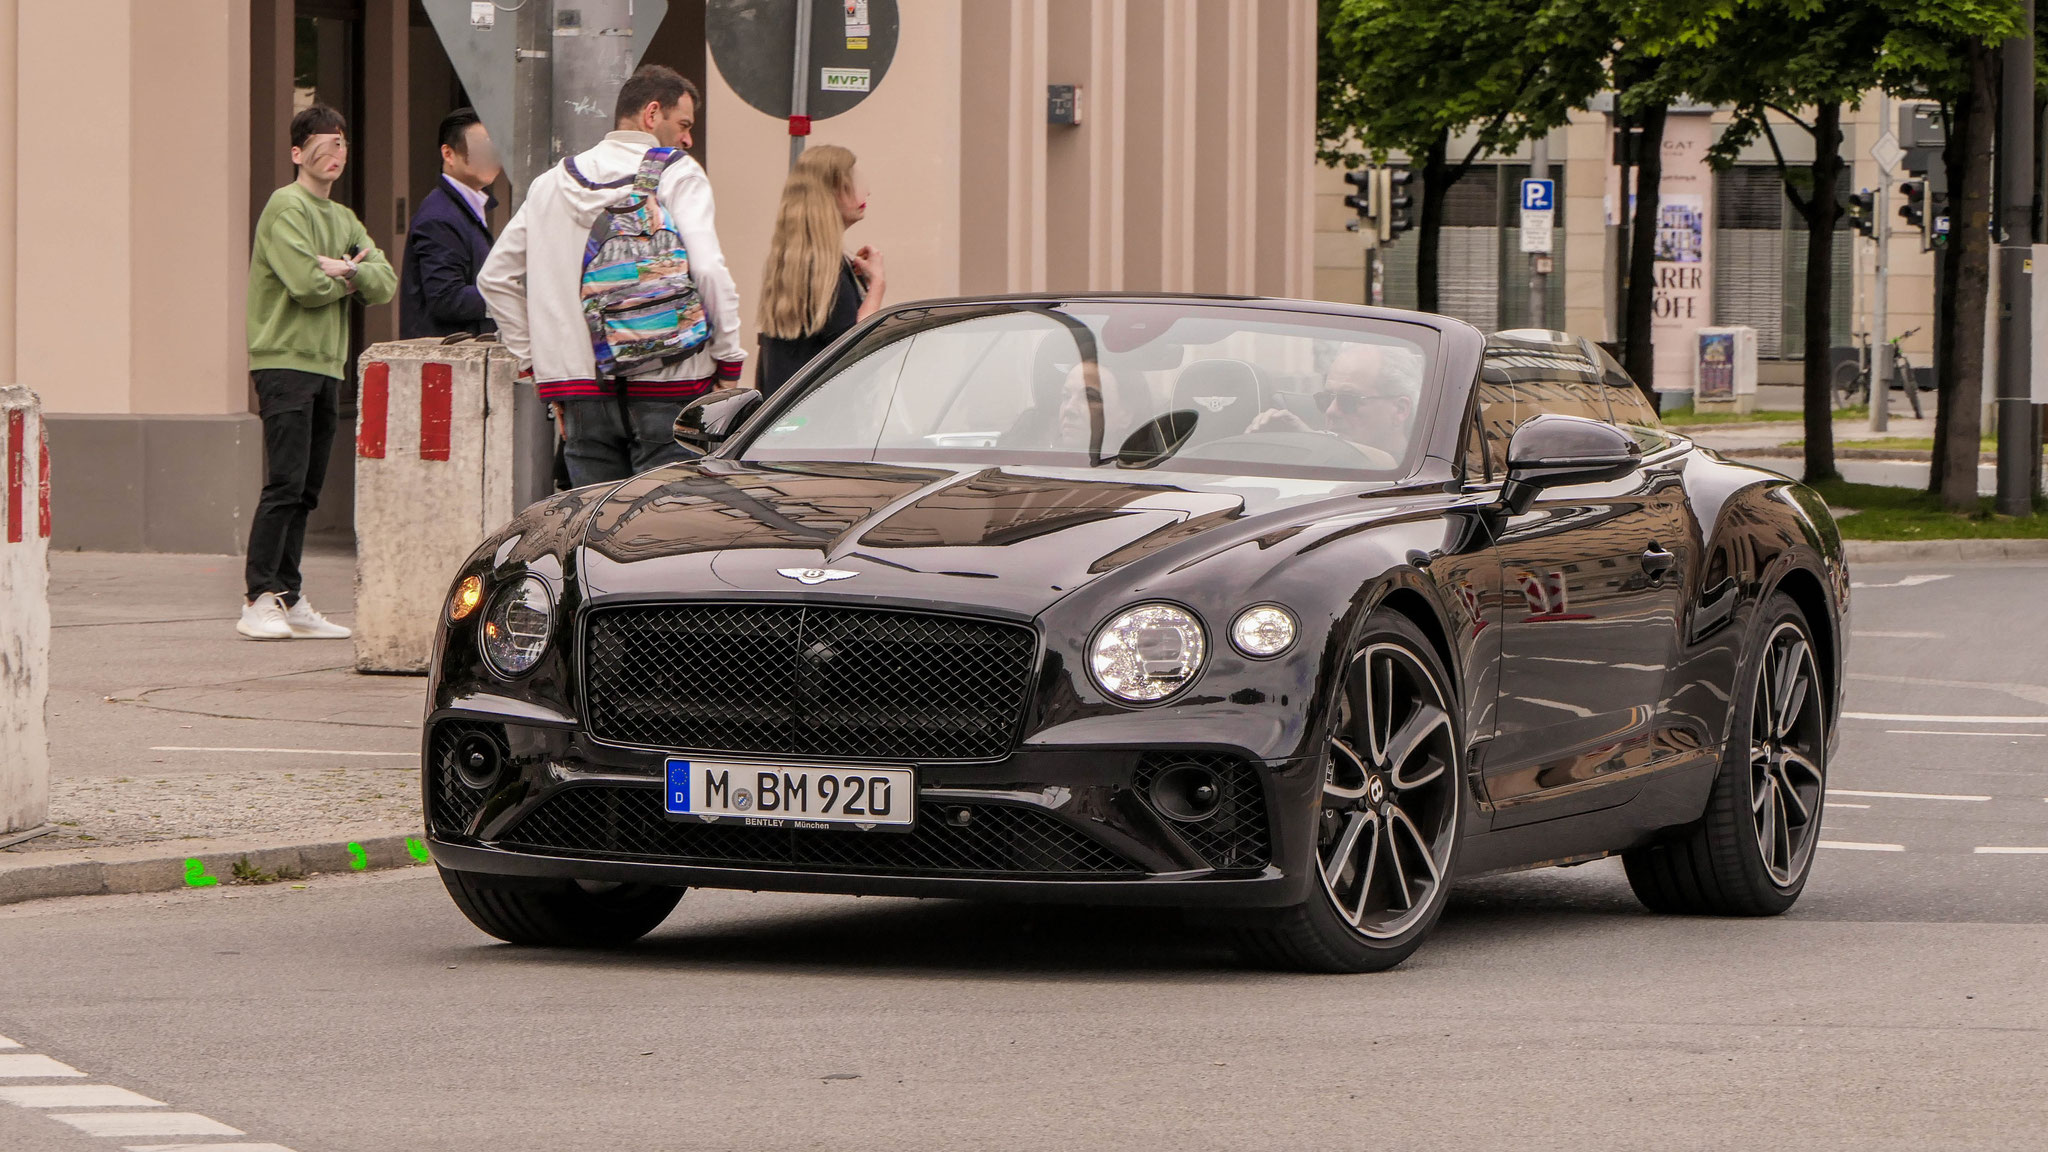 Bentley Continental GTC - M-BM-920